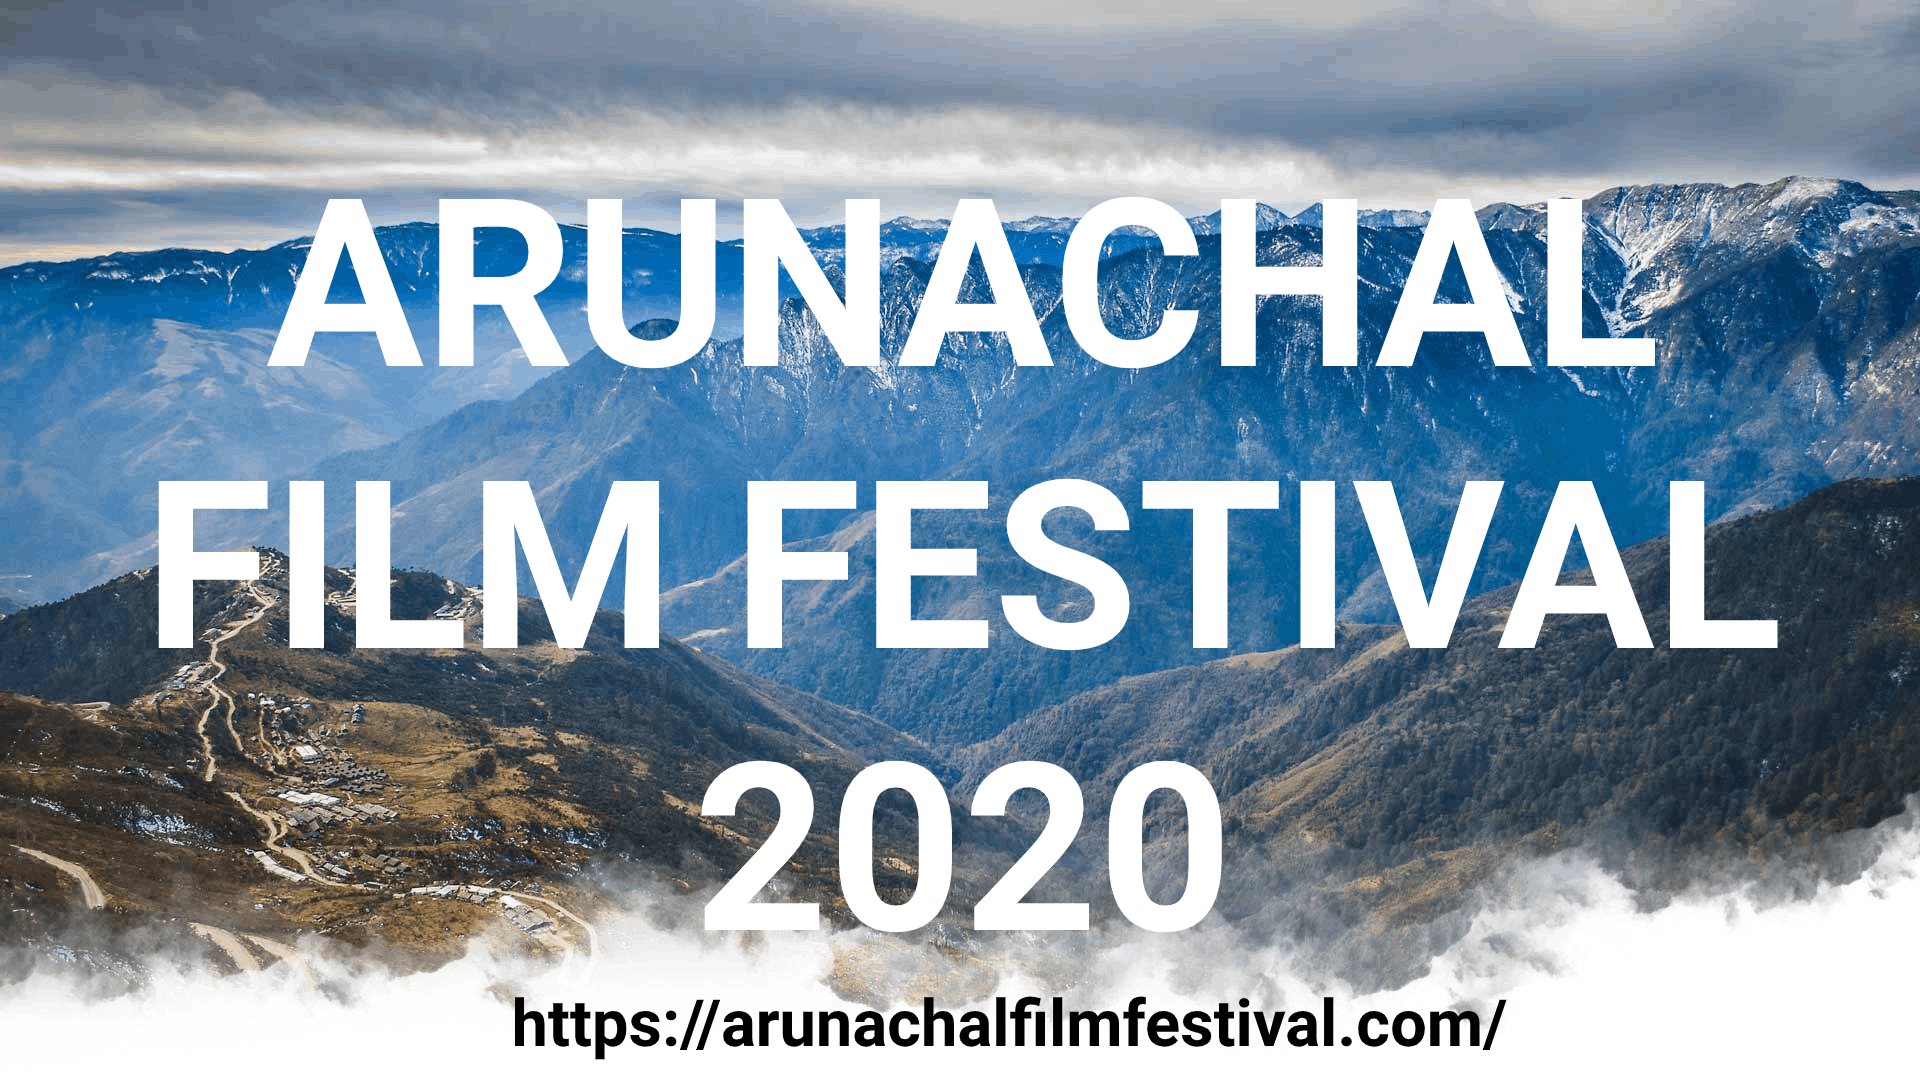 7th Edition of Arunachal Film Festival Announced